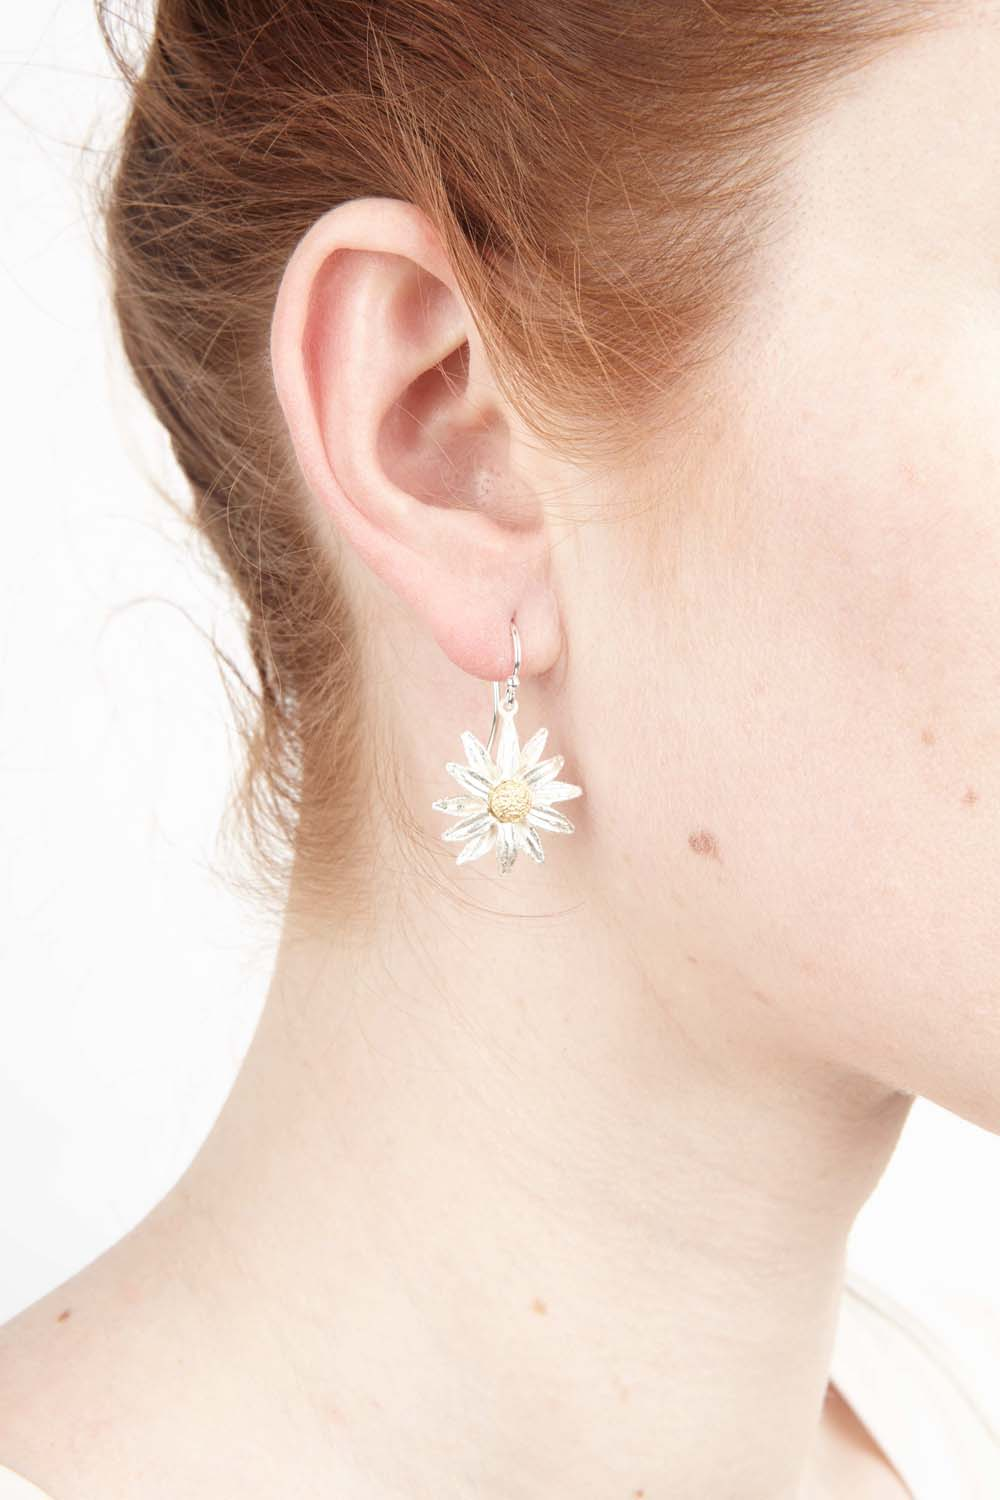 Daisy Earrings - Wire Drop